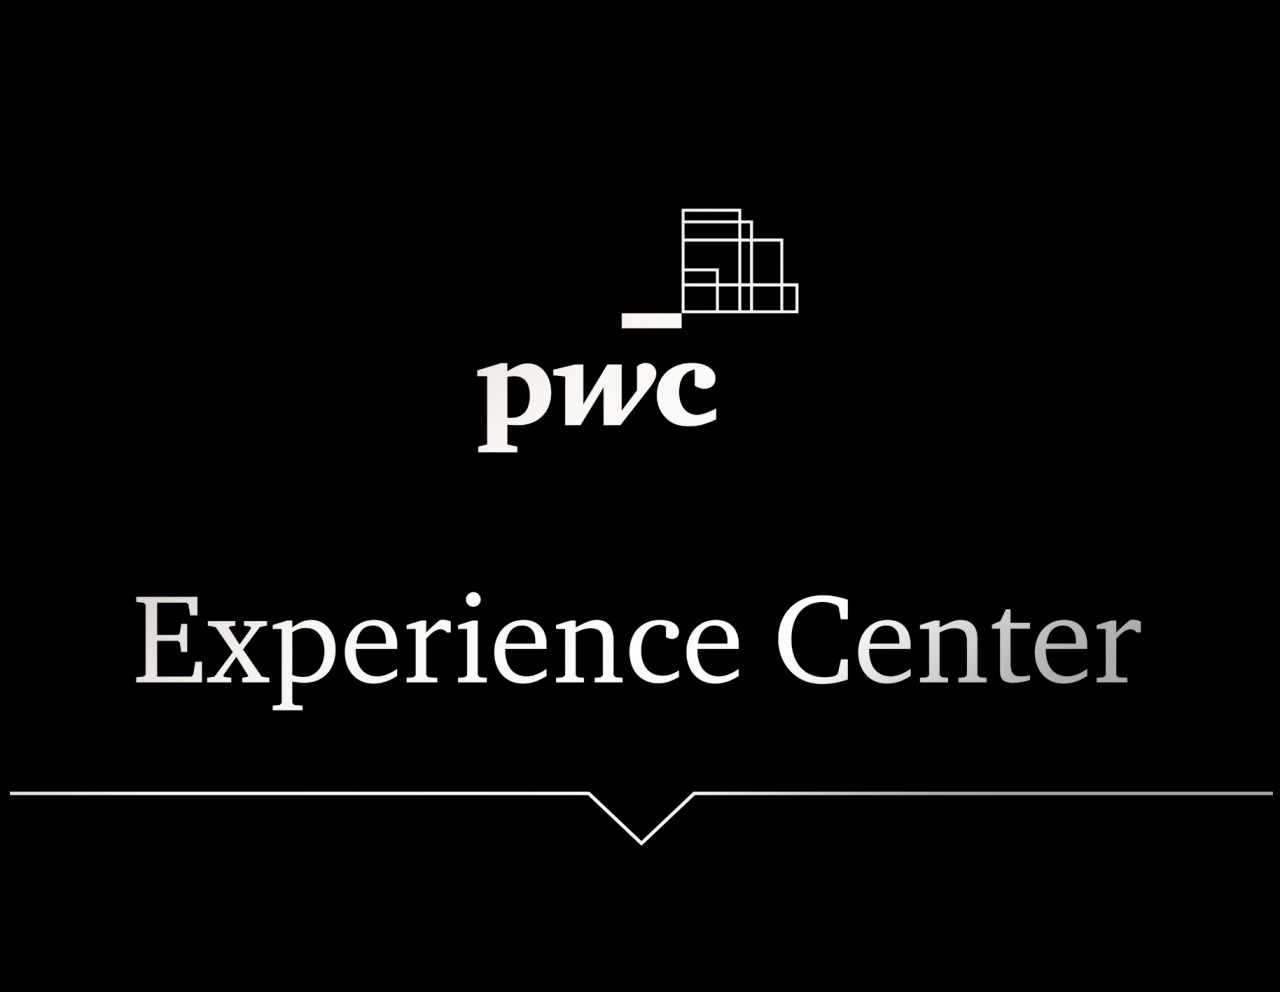 Claudia Kahl - Exhibition Design pwc experience center